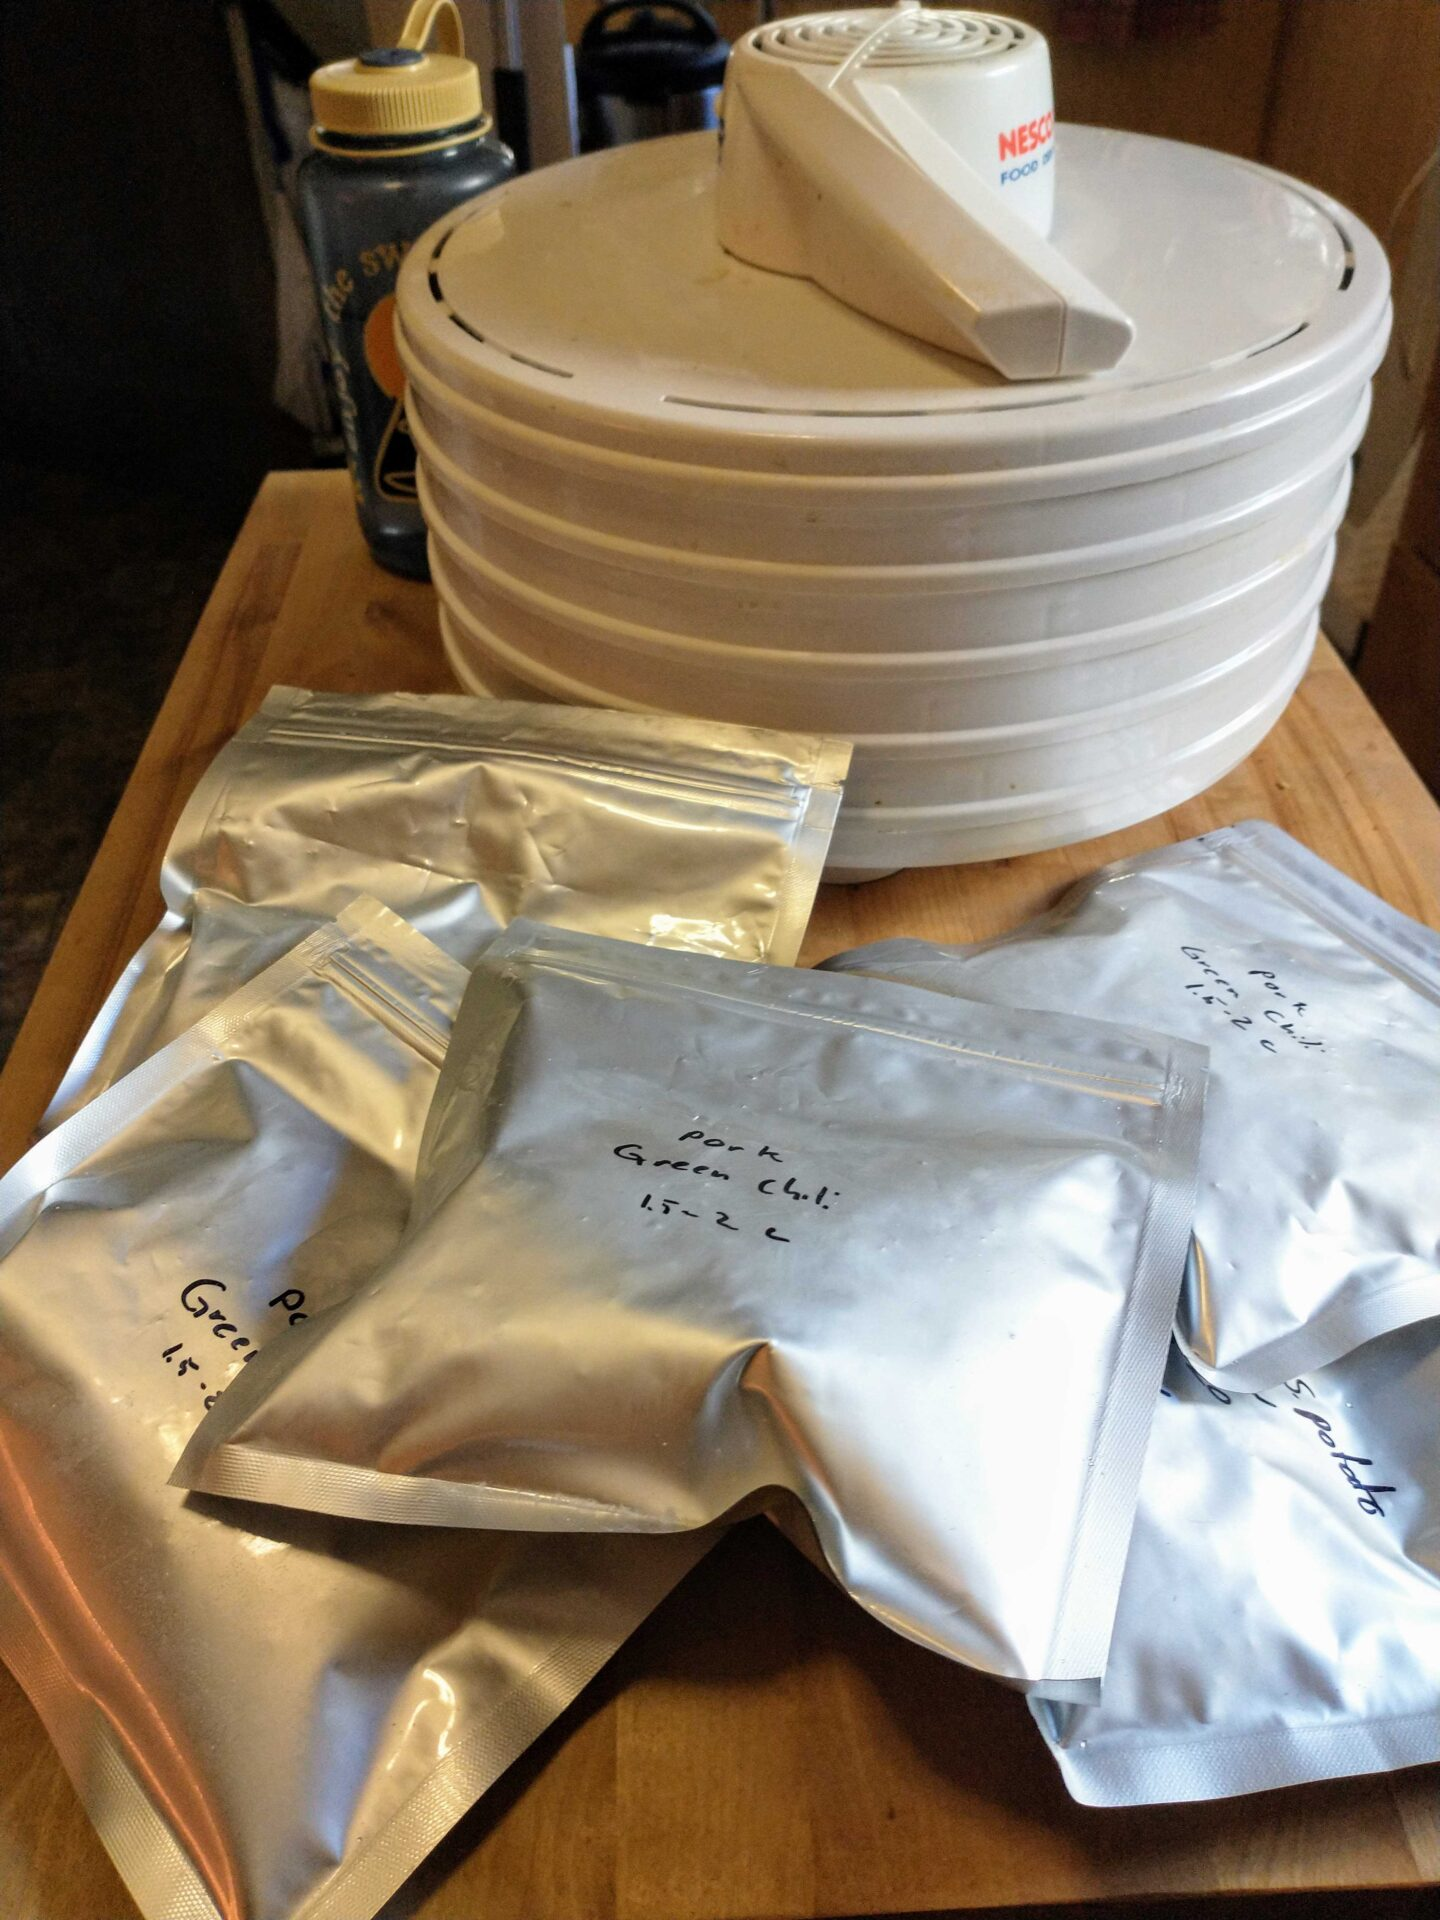 Silver mylar bags of dehydrated meals and a white-colored, circular dehydration machine.